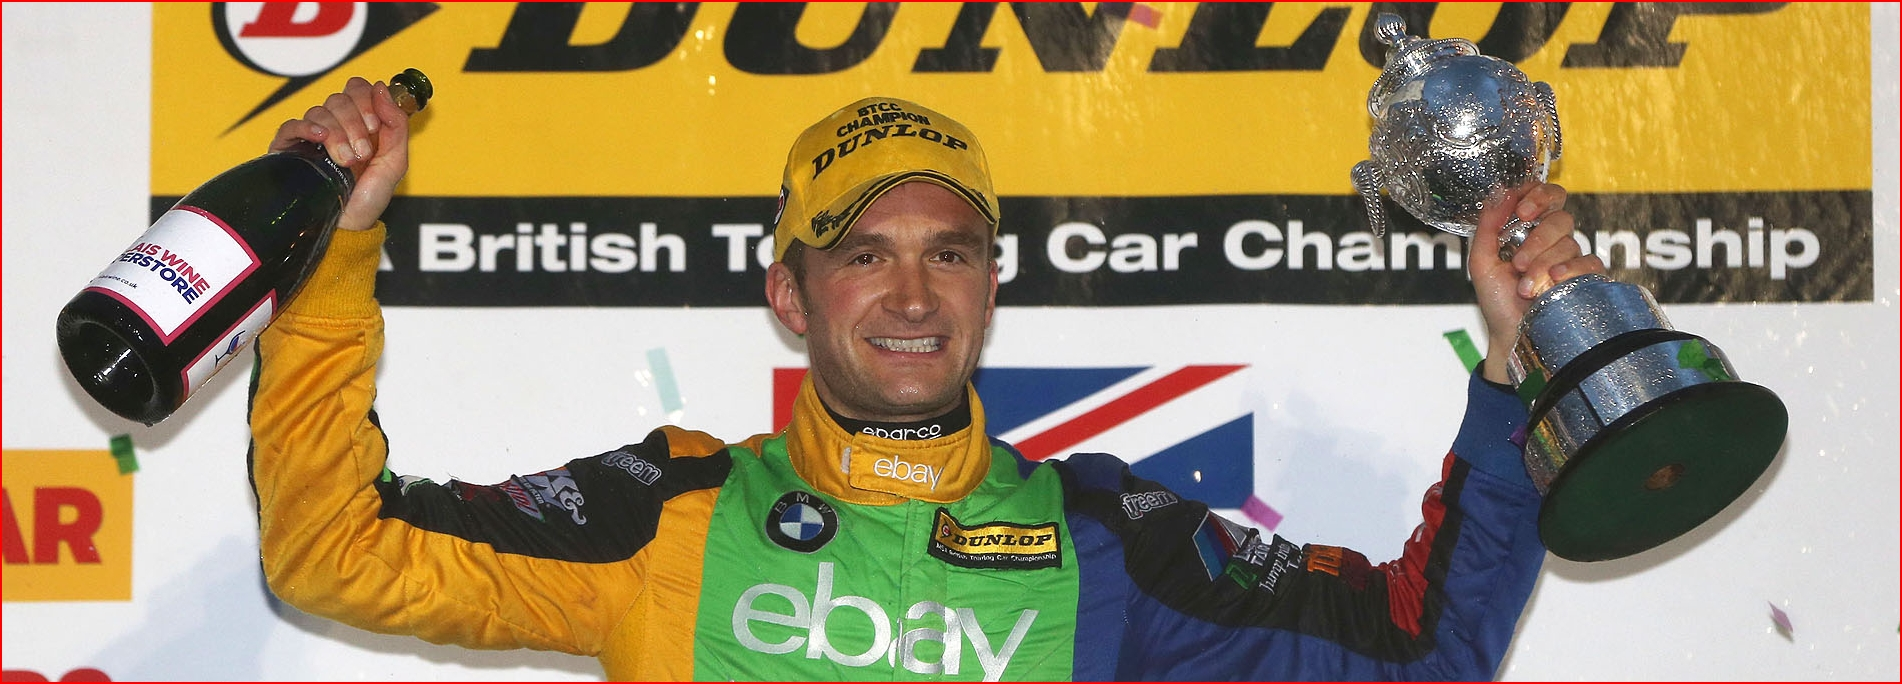 Turkington04